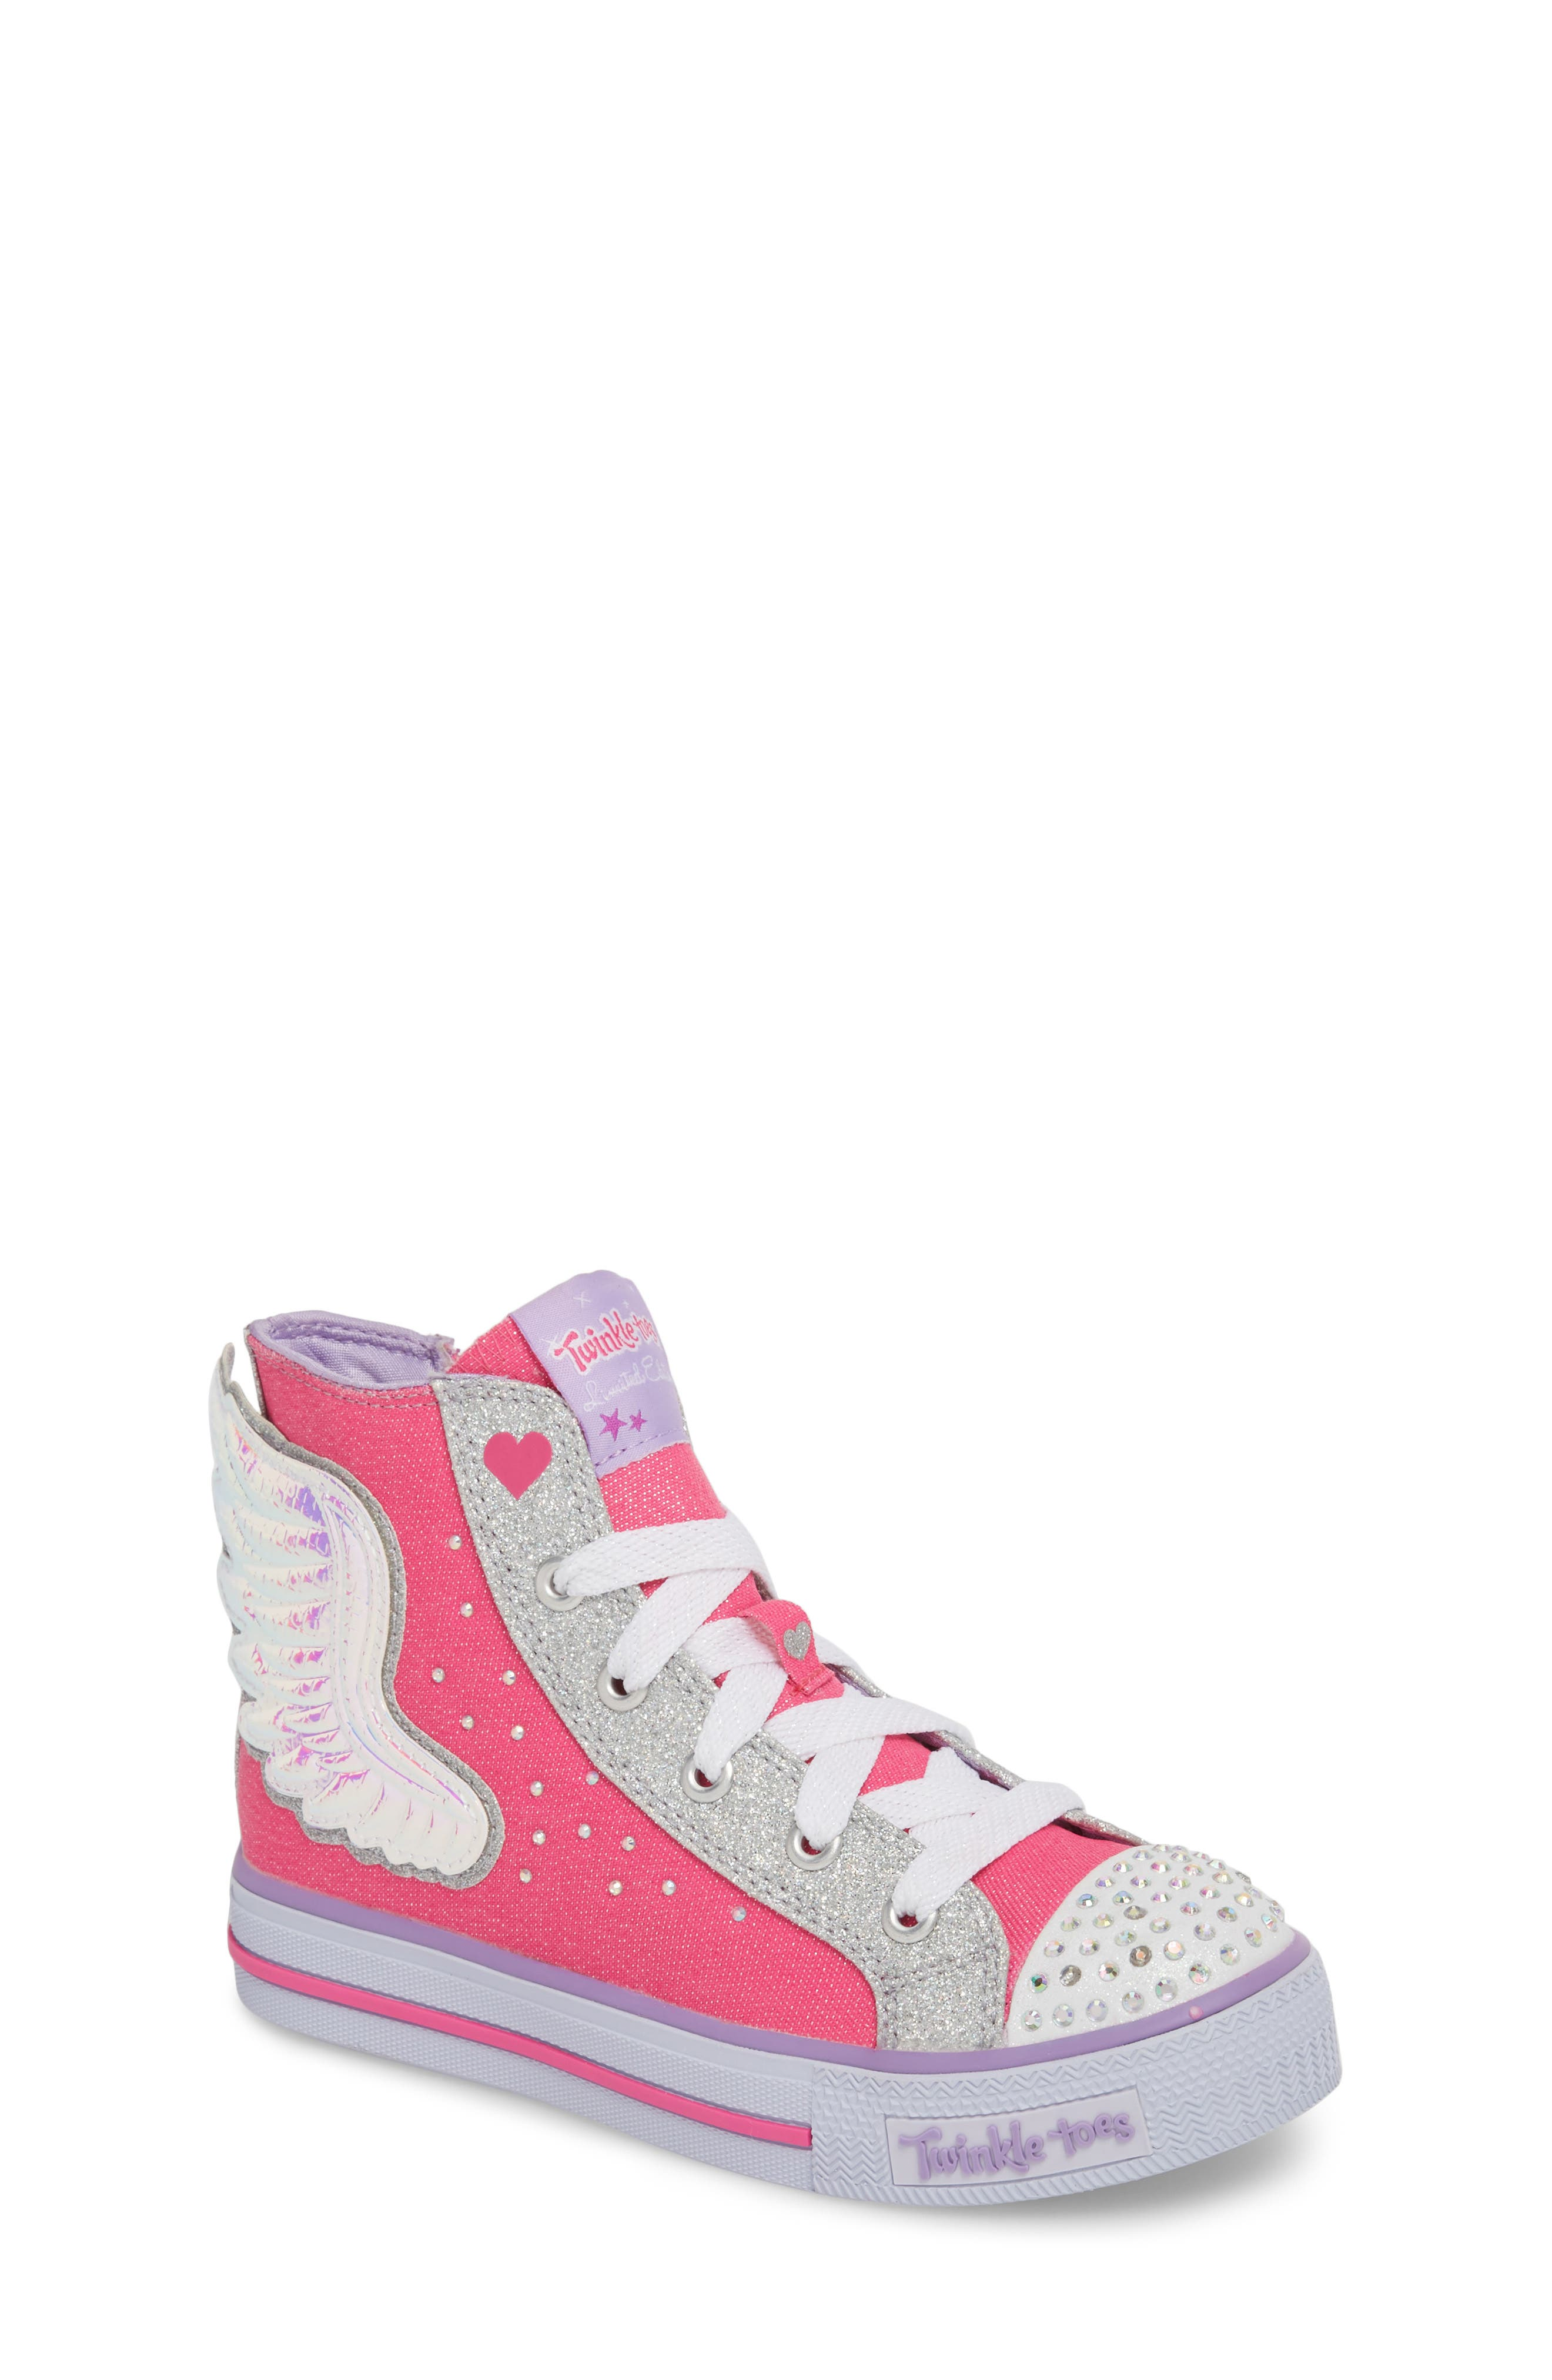 Twinkle Toes Shuffles Wonder Wings Light-Up High Top Sneaker,                         Main,                         color, Hot Pink/ Silver